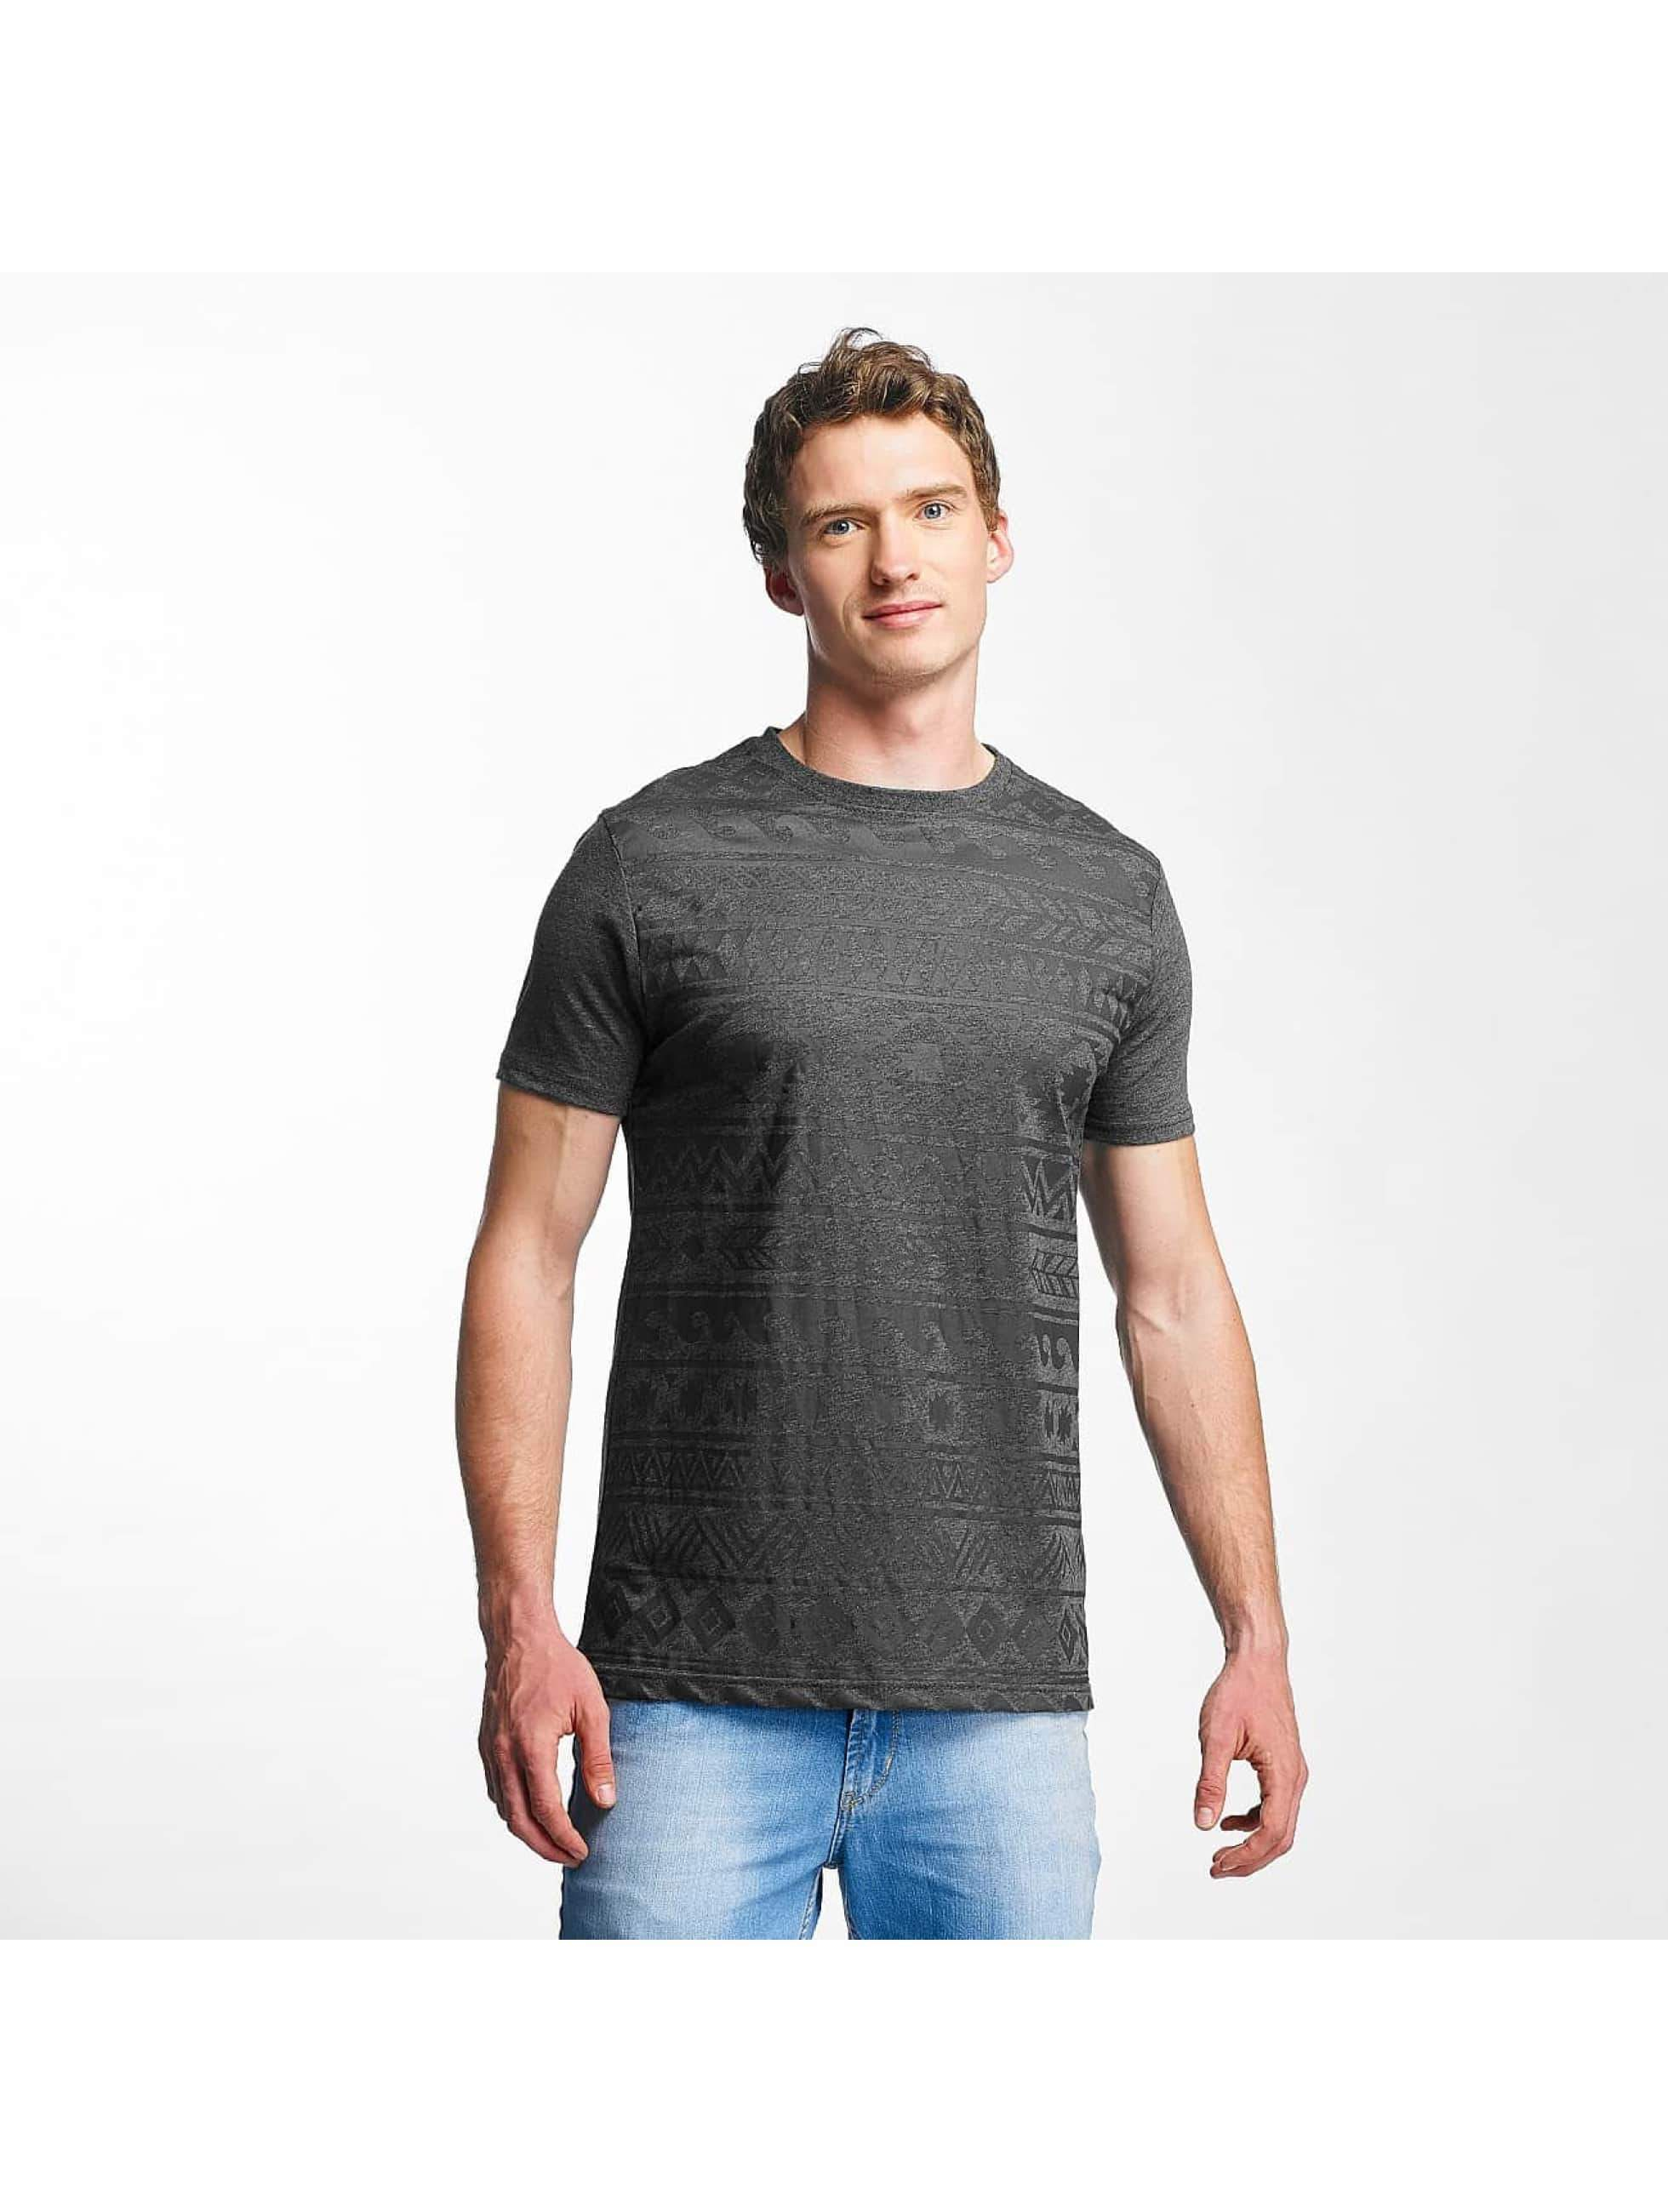 Just Rhyse / T-Shirt Casmalia in grey S